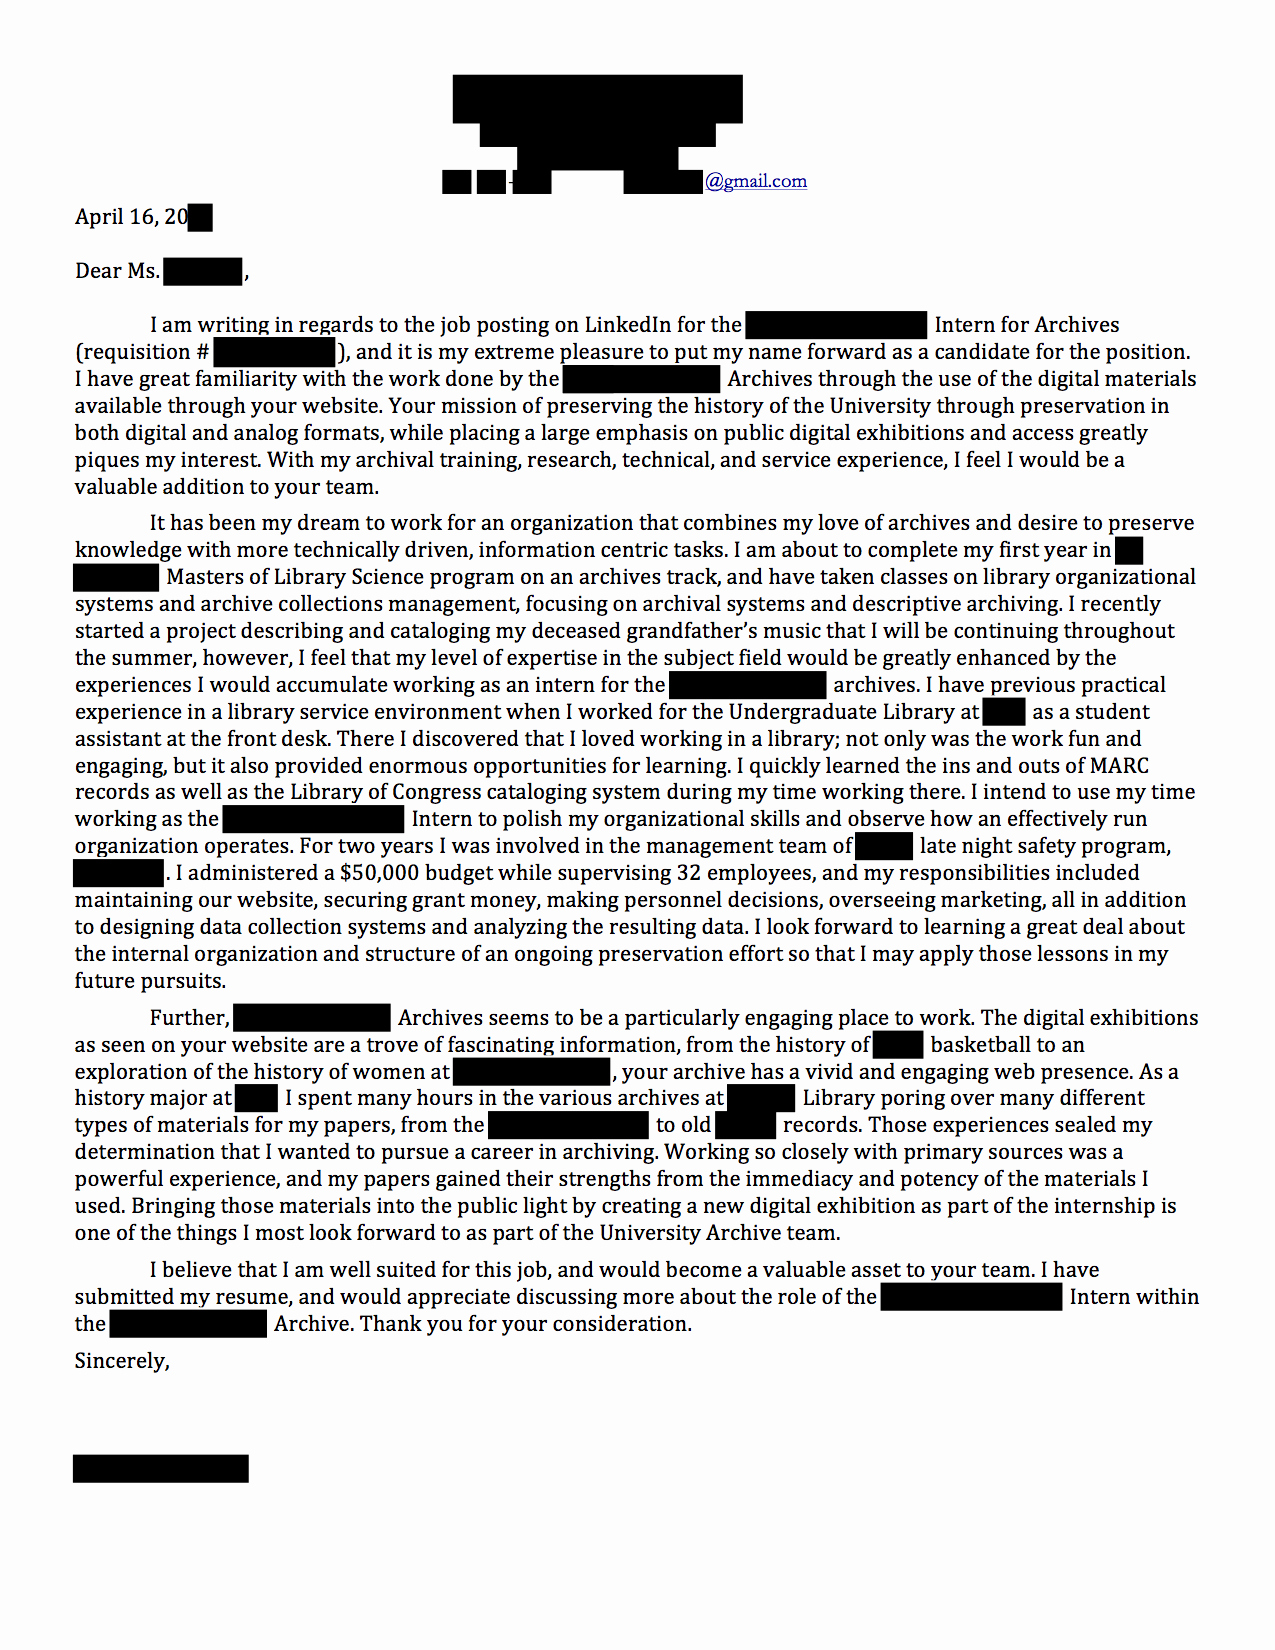 Internship Cover Letter Sample Lovely Internship